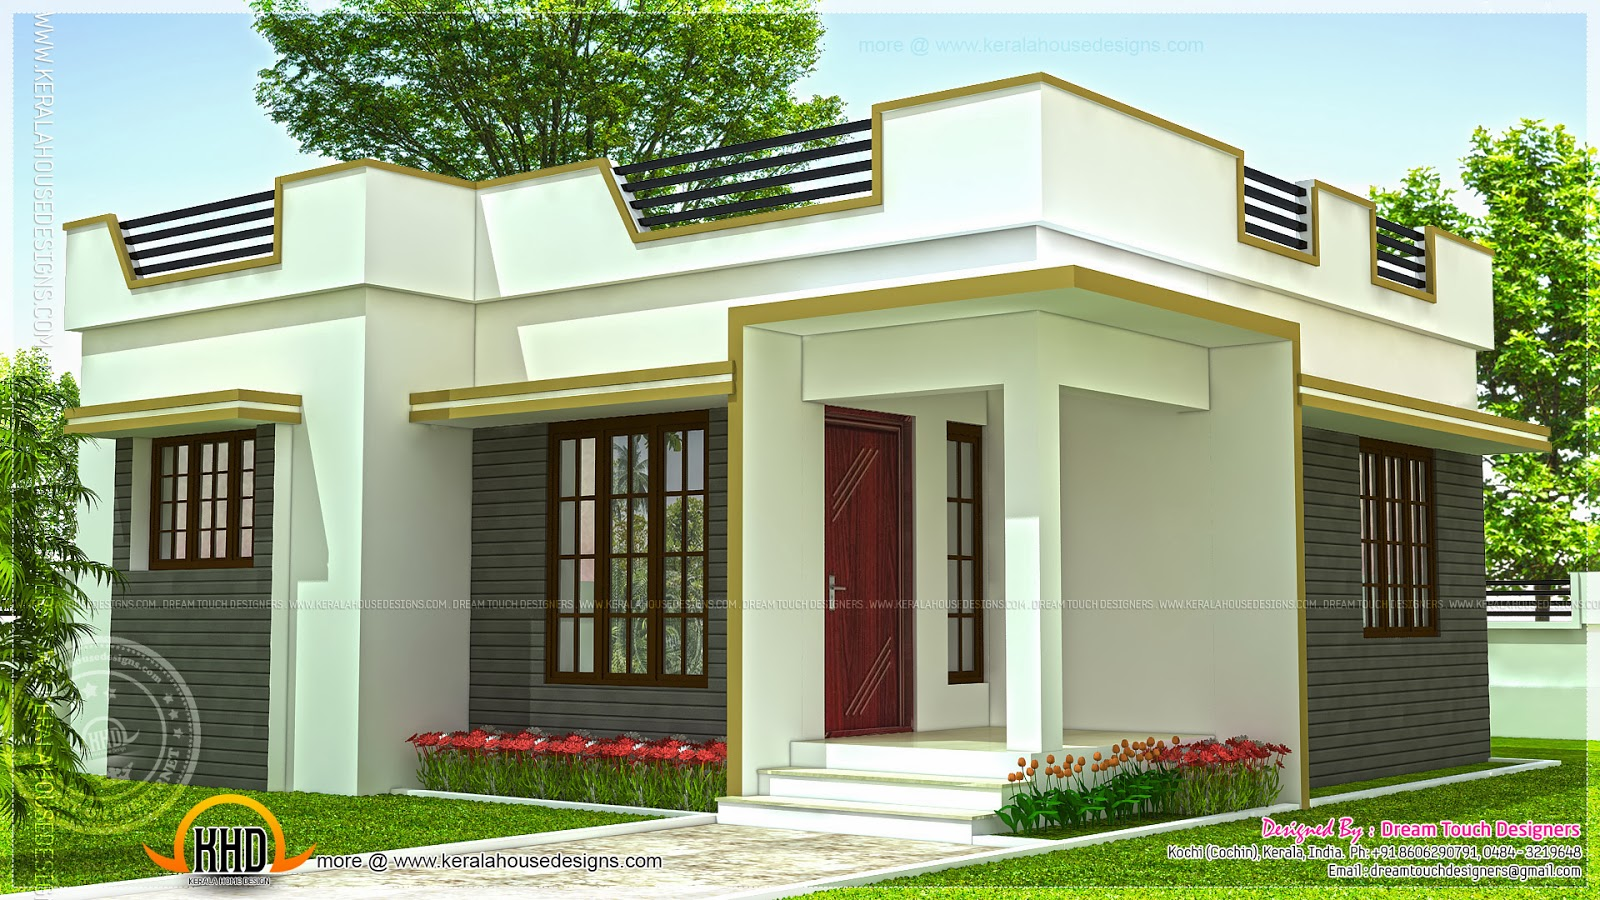 lately 21 small house design kerala small house kerala lately 21 small house design kerala small house kerala jpg (1600,Floor Plans Kerala Style Houses